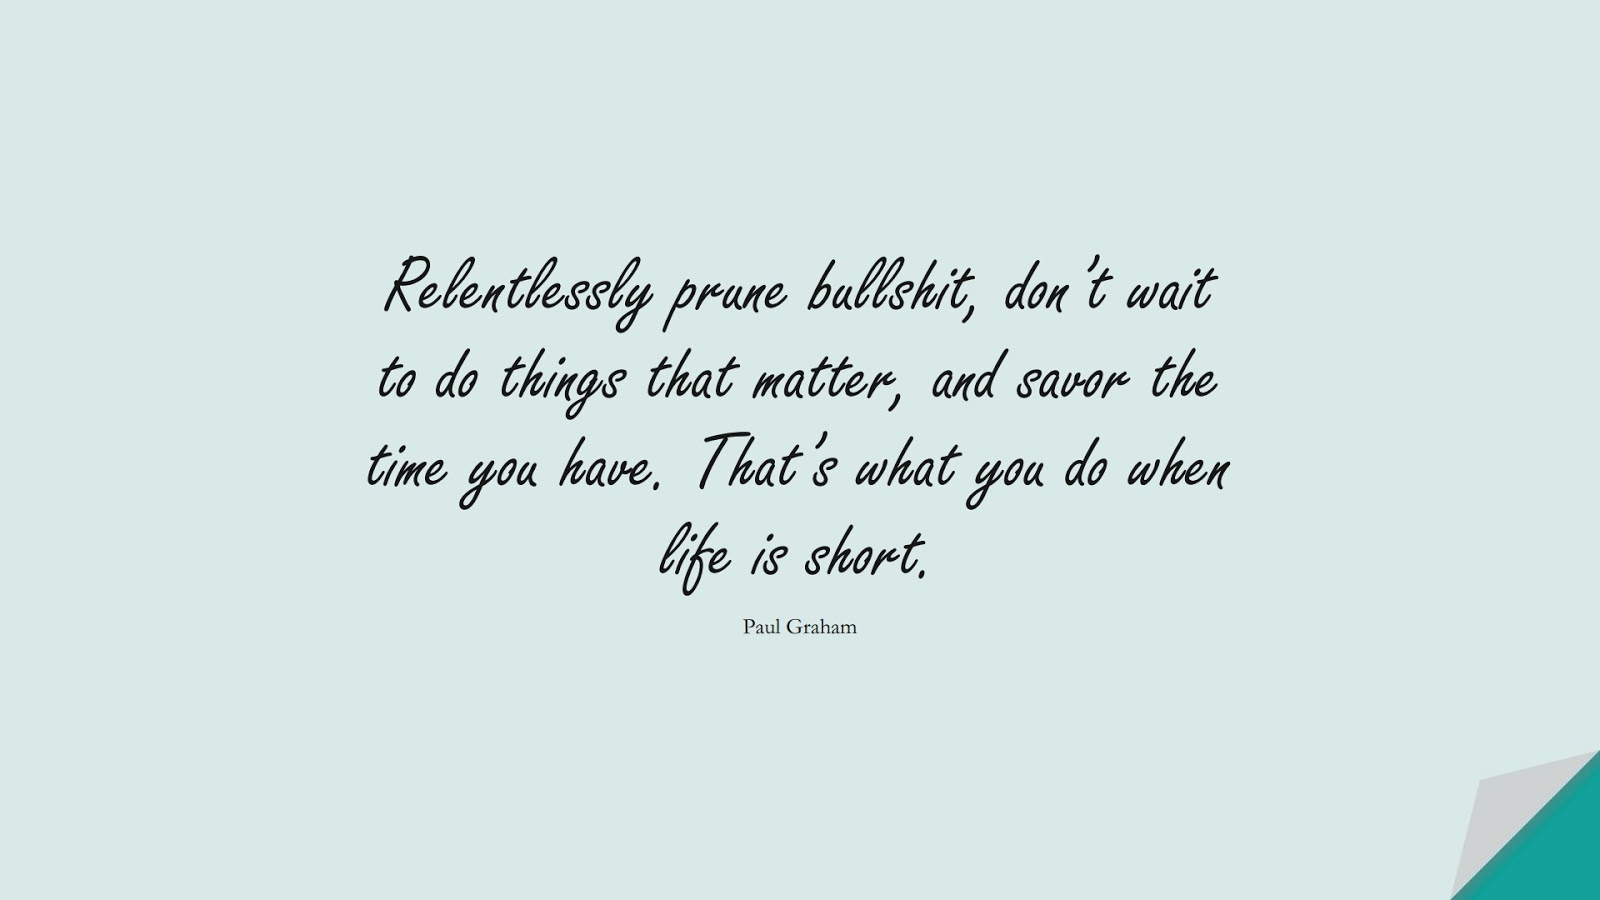 Relentlessly prune bullshit, don't wait to do things that matter, and savor the time you have. That's what you do when life is short. (Paul Graham);  #BestQuotes